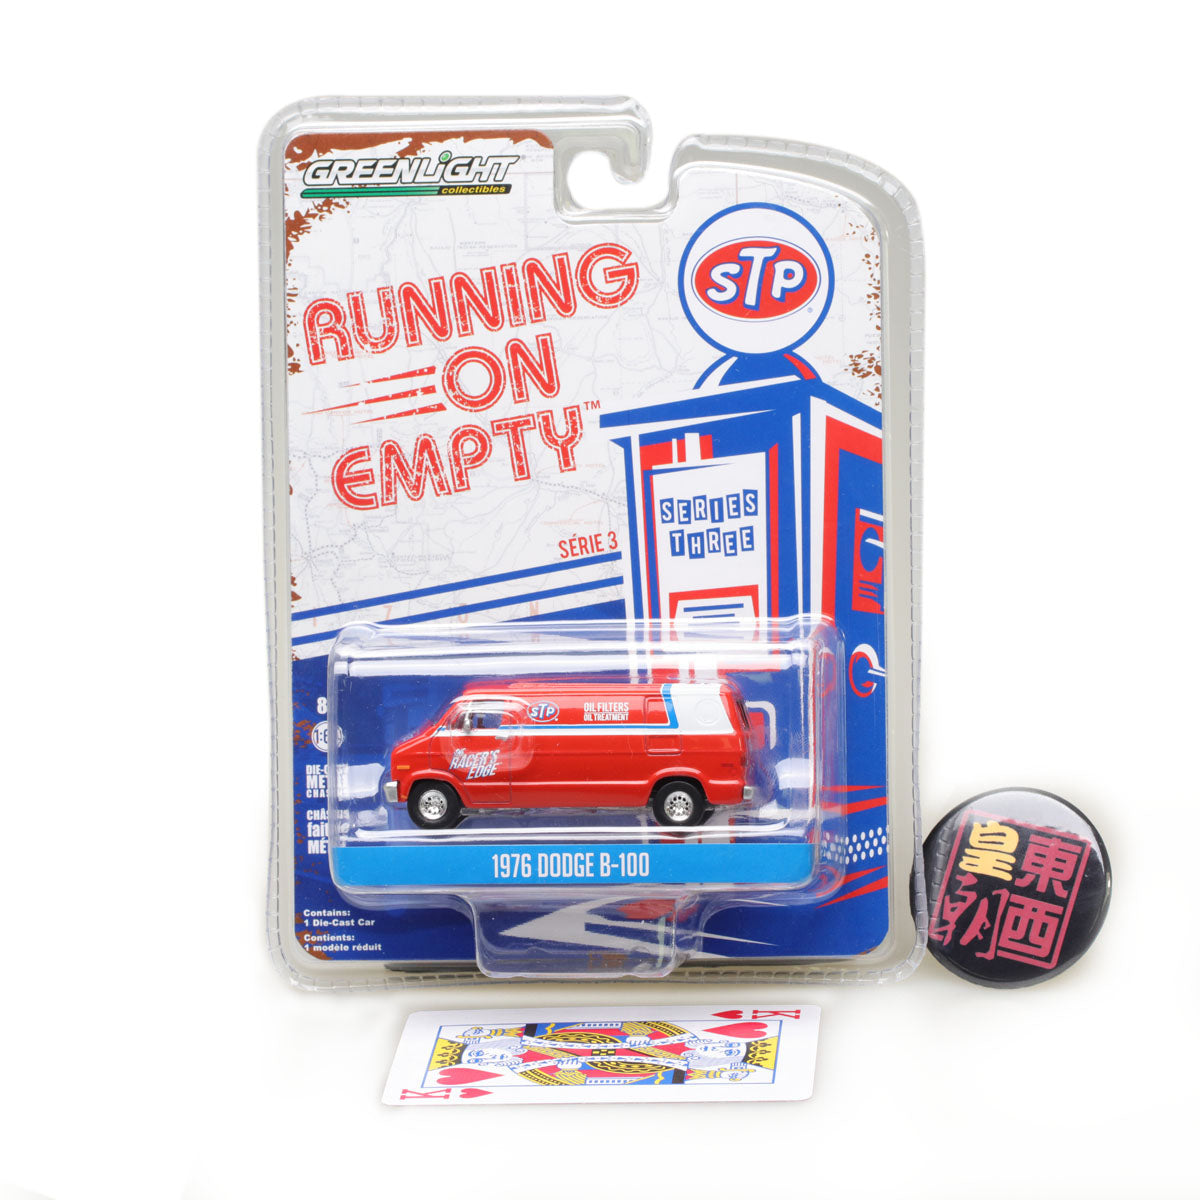 GreenLight 1:64 Running on Empty Series 3 - 1976 Dodge B-100 Van - STP Diecast Model Car 41030-C